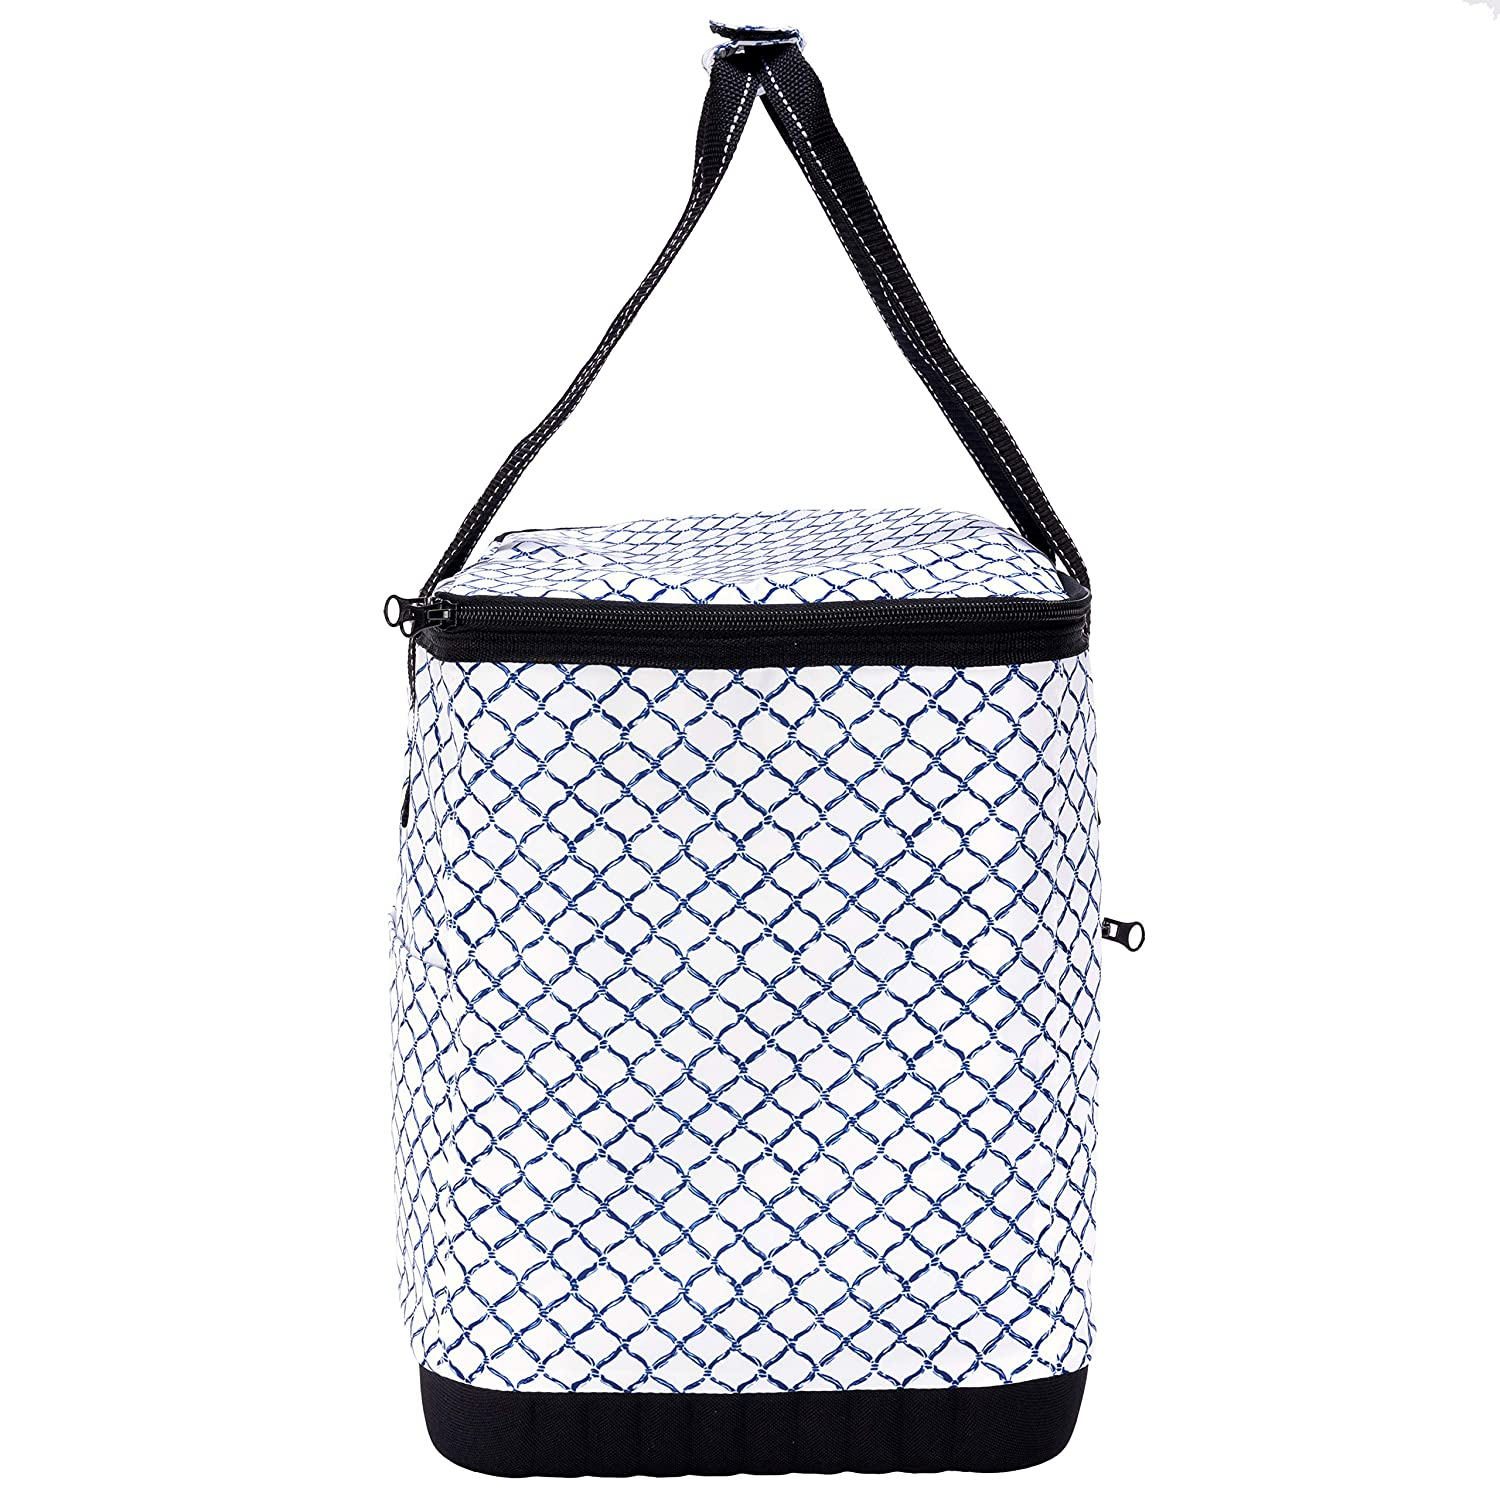 Fleetwood Black SCOUT The Stiff One Large Insulated Soft Cooler Zipper Closure Water Resistant Reinforced Hard Bottom and Handles PVC-Free Liner